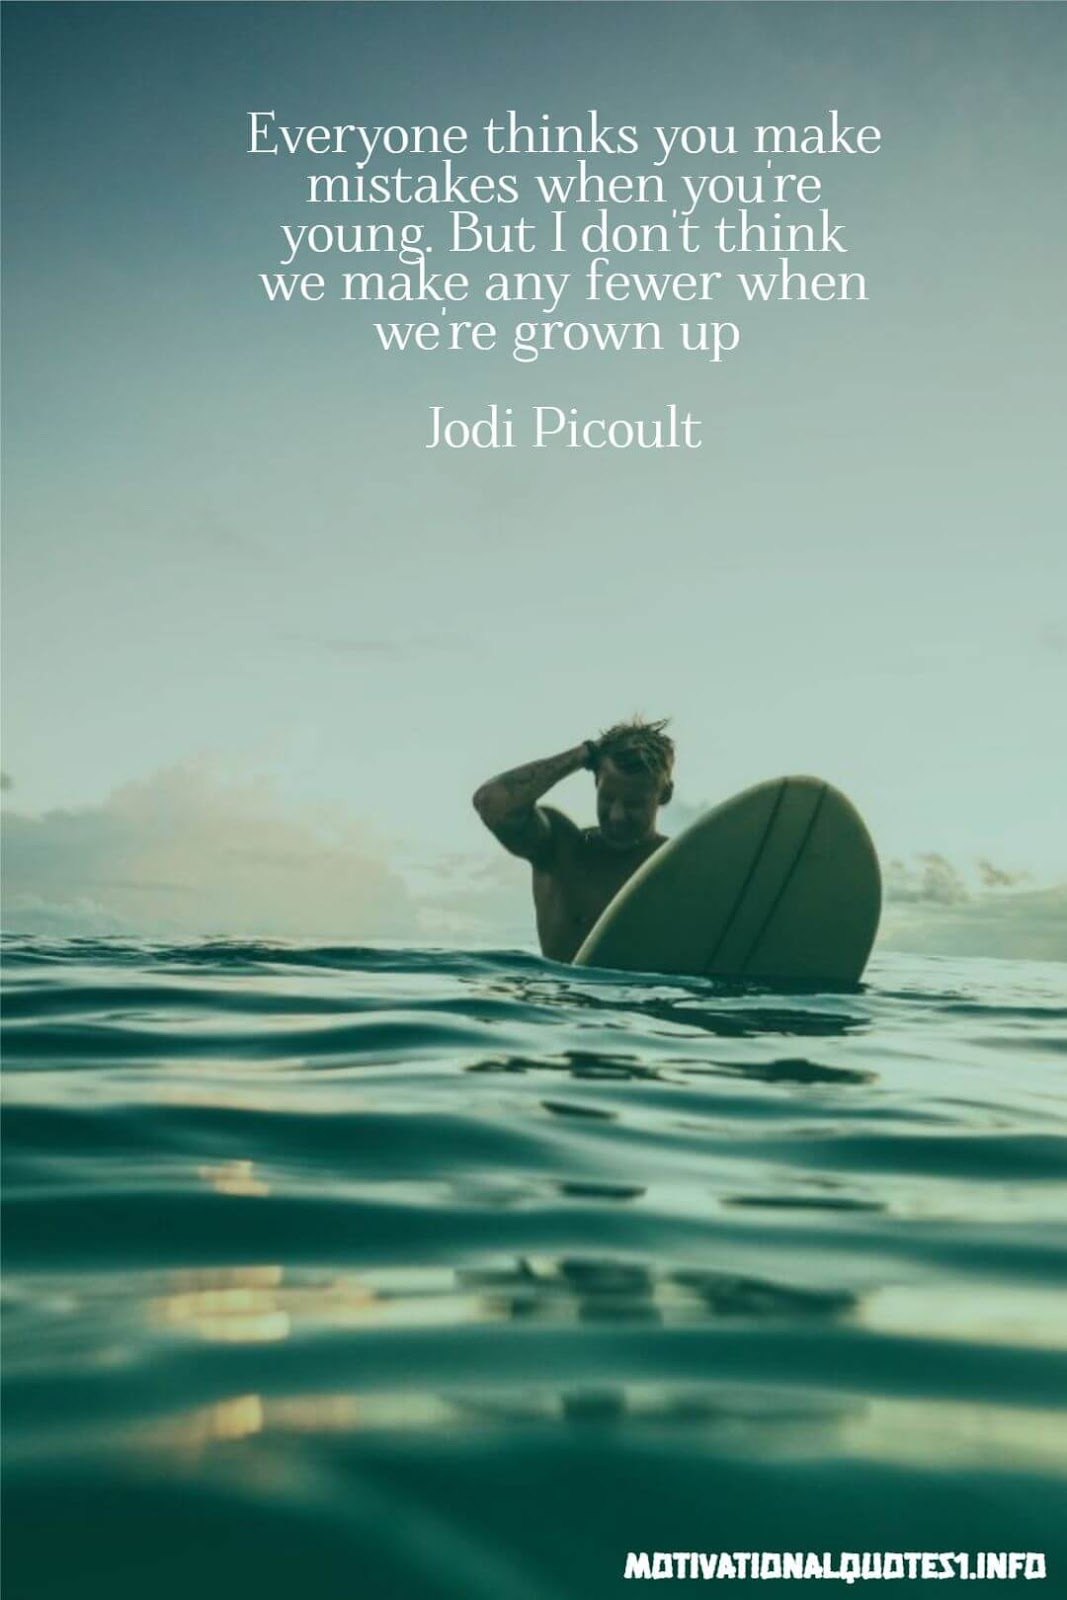 Growing Up Quotes Motivational Quotes